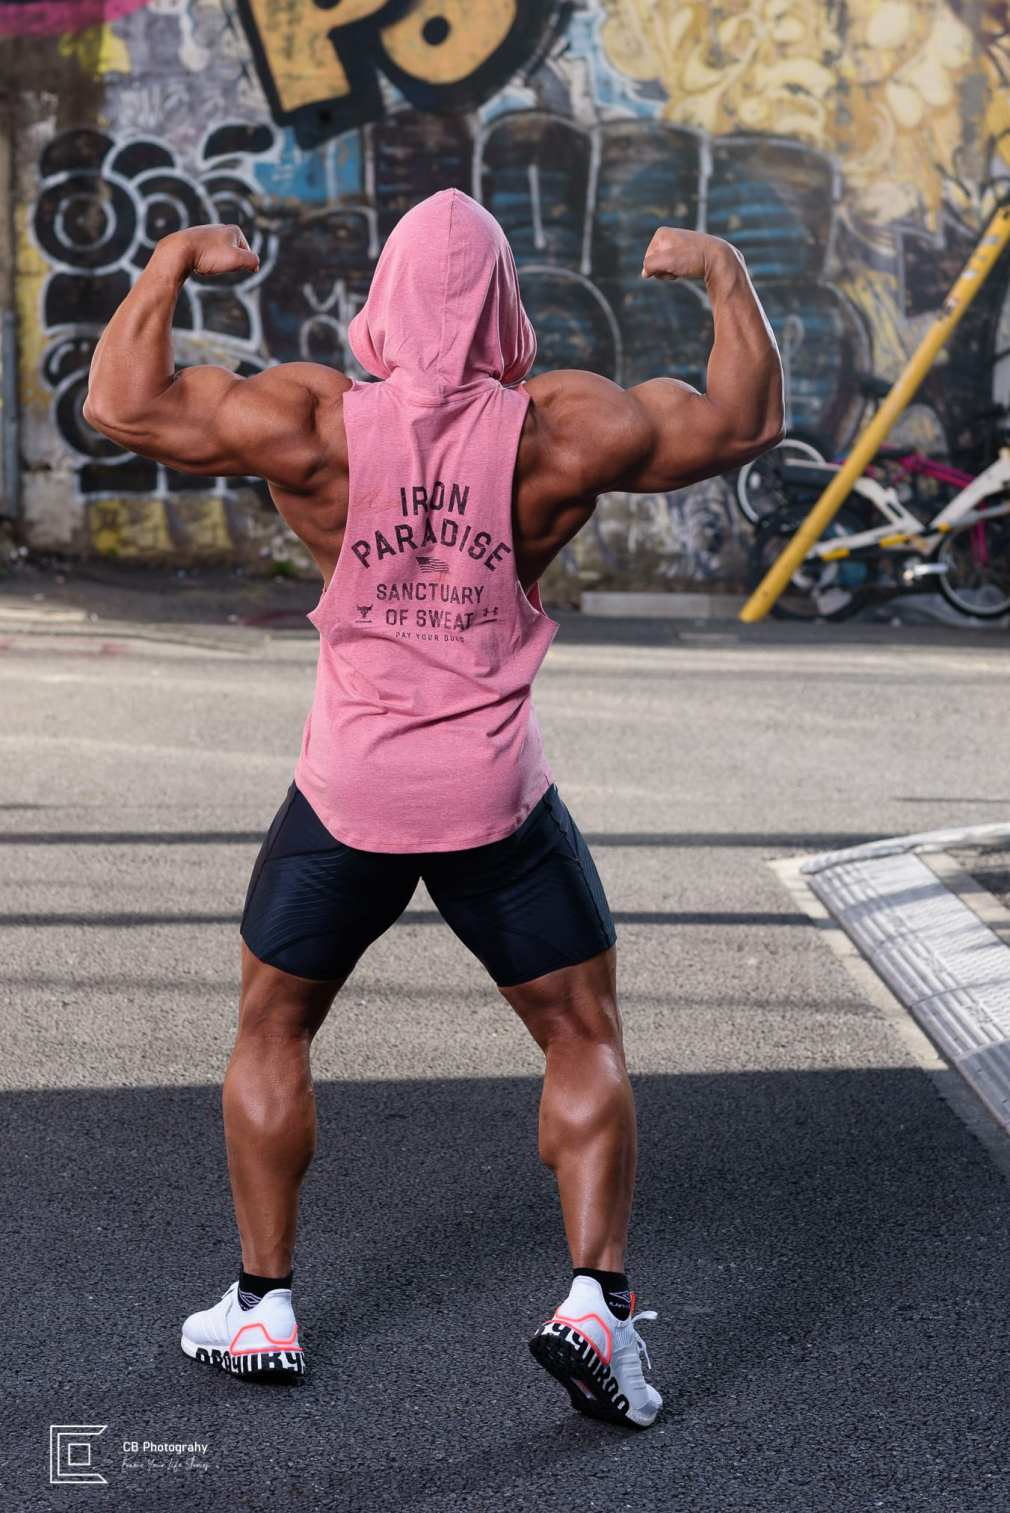 Bodybuilder Portraits in Tokyo by Cristian Bucur Photographer. Images taken in Shibuya.